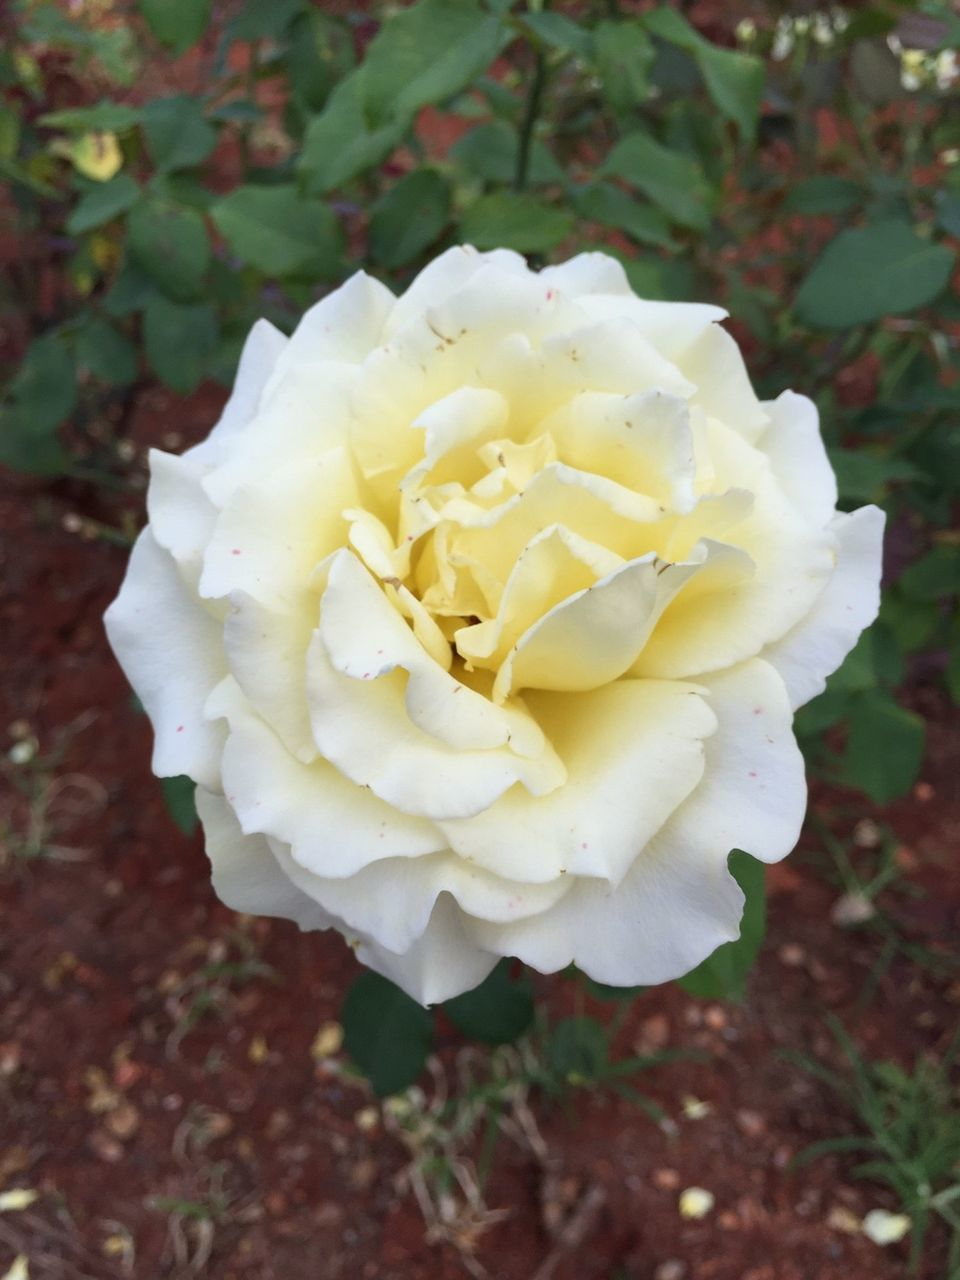 flower, petal, nature, white color, fragility, rose - flower, flower head, no people, beauty in nature, freshness, close-up, day, growth, outdoors, plant, blooming